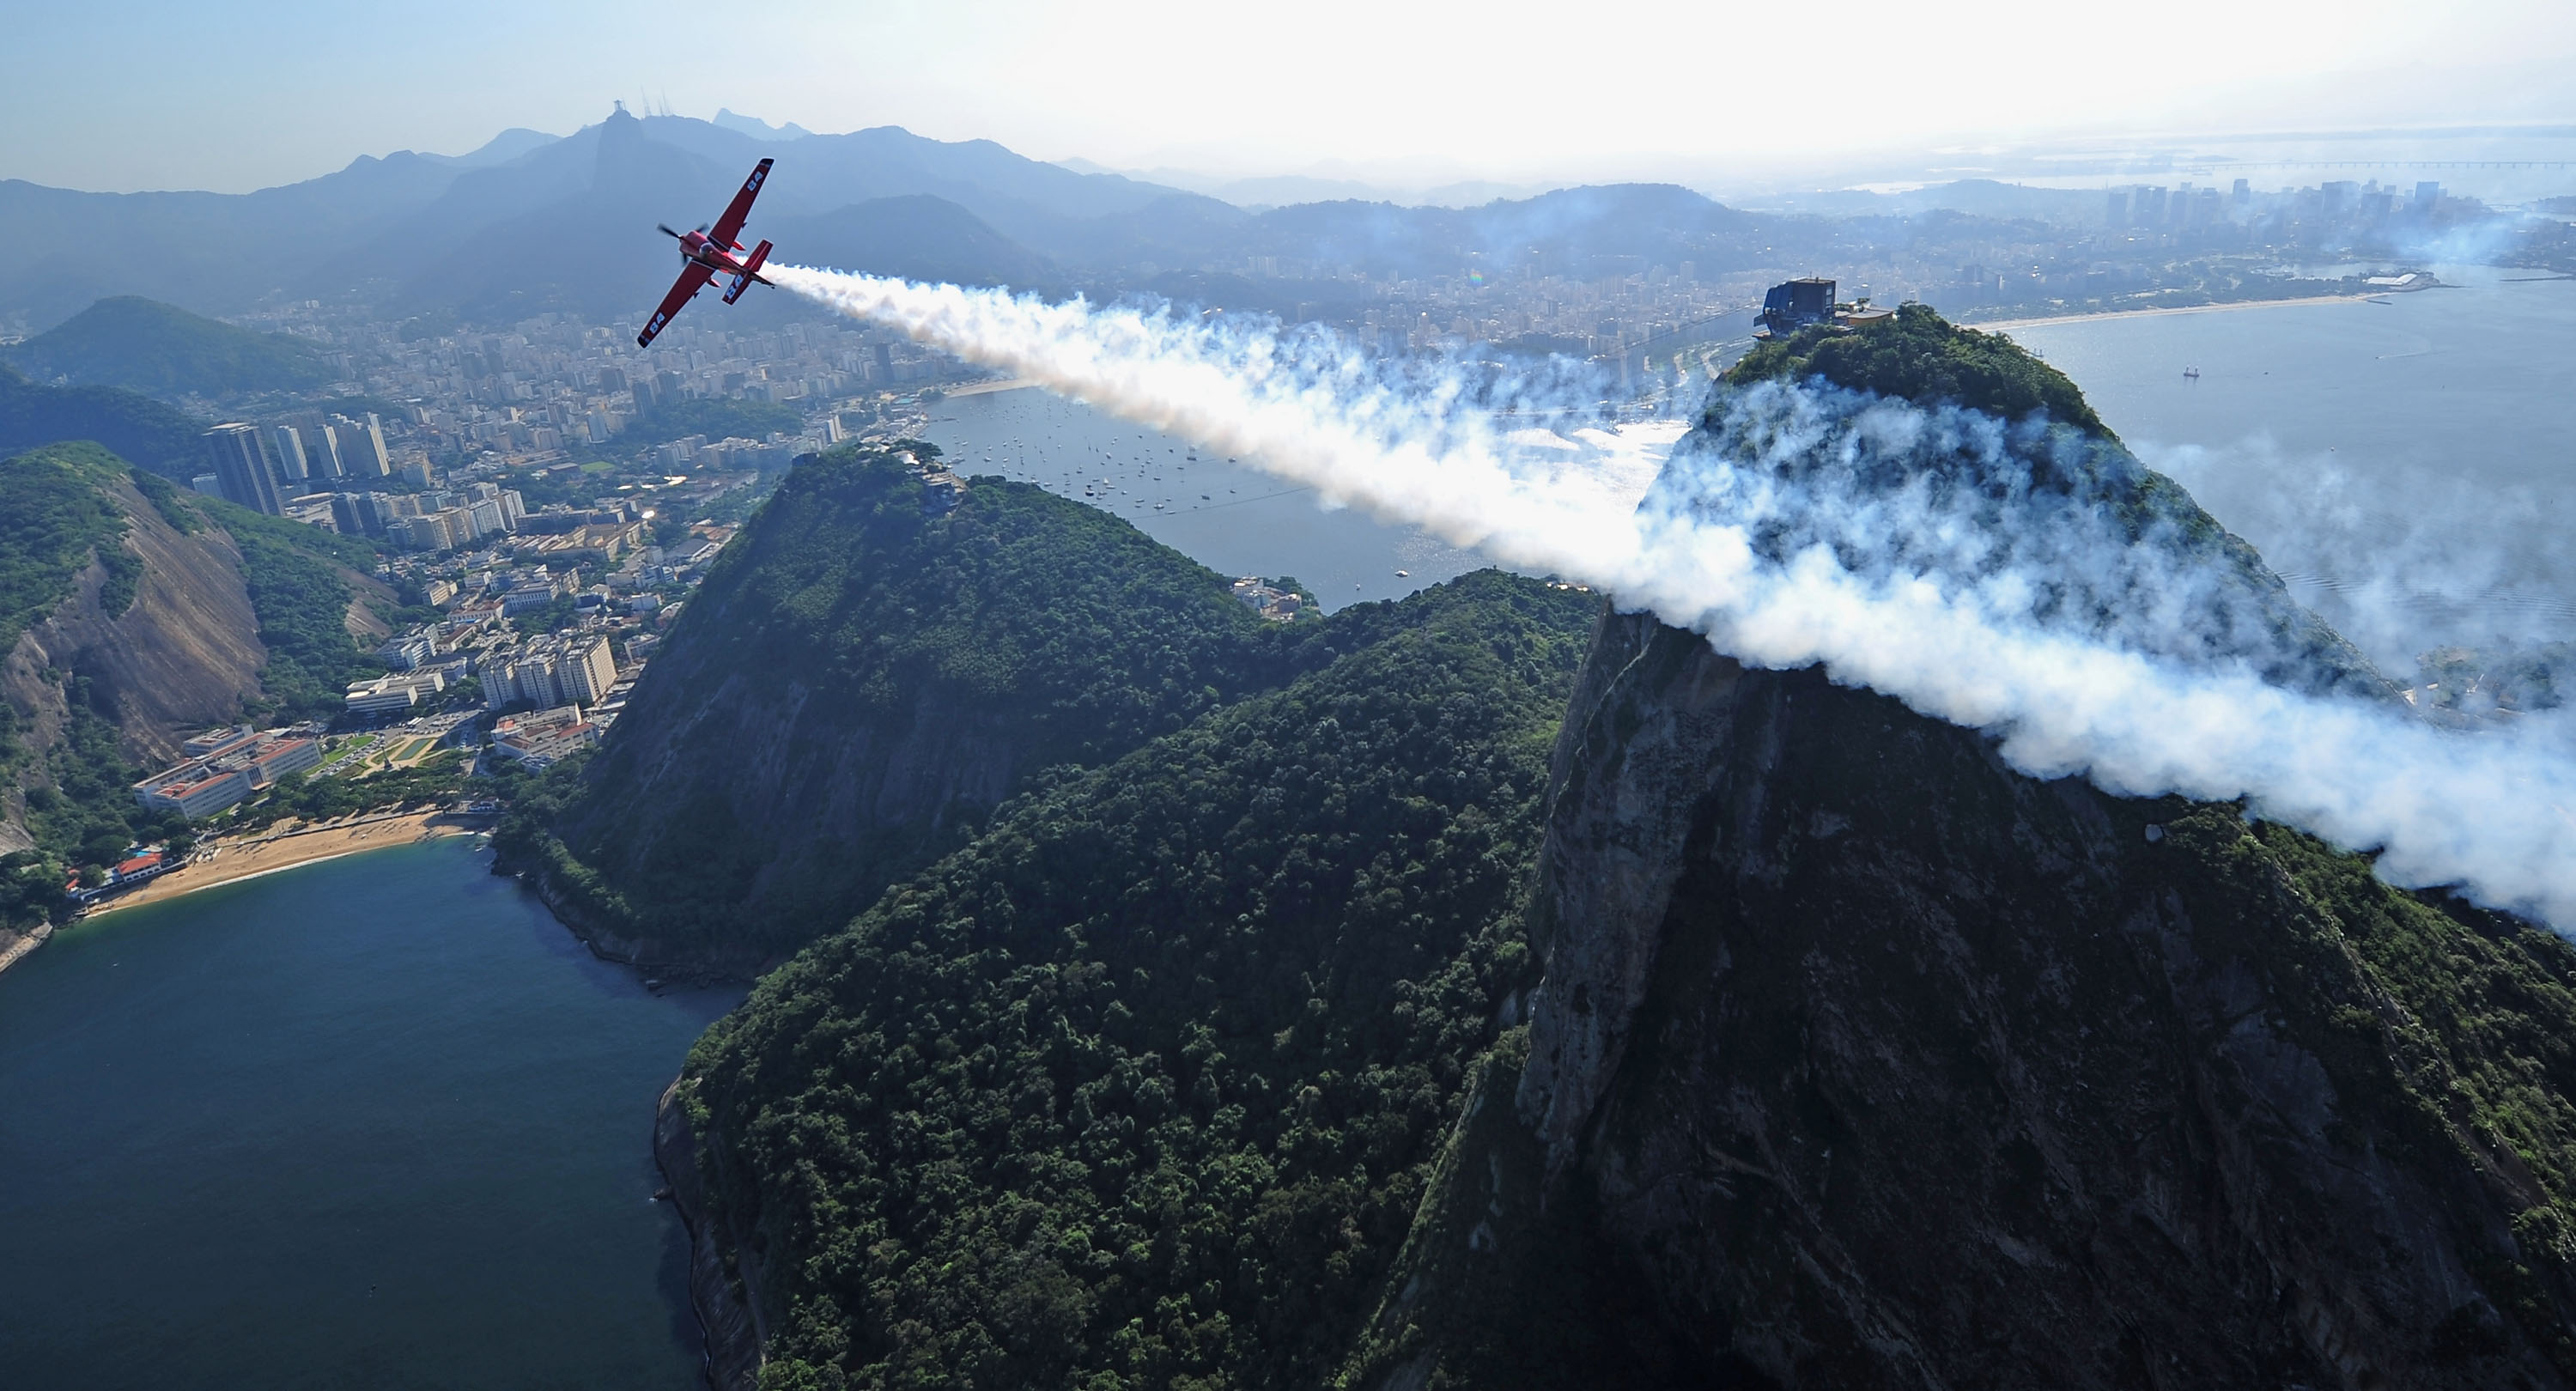 Aeroplans - Pete McLeod of Canada in action over Sugar Loaf Mountain during the Red Bull Air Race Day -4 at on May 5, 2010 in Rio de Janeiro, Brazil © Mike Hewitt / Getty Images for Red Bull Air Race